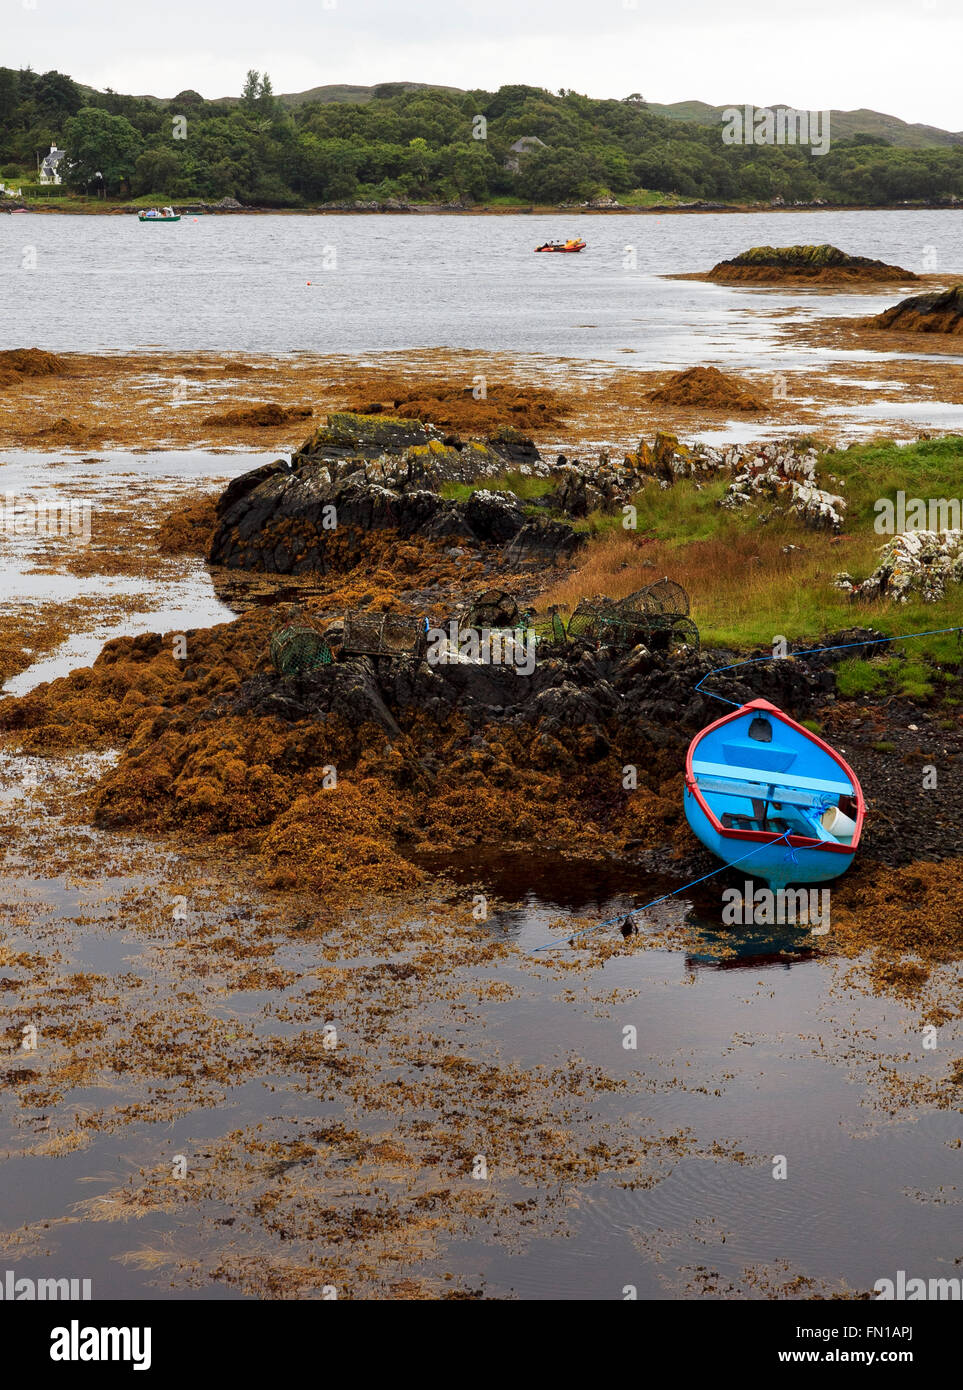 Blue rowing boat ashore amisdst colourful seaweed - Loch nan Ceall  - Arisaig harbour, Lochaber, Highland Scotland Stock Photo